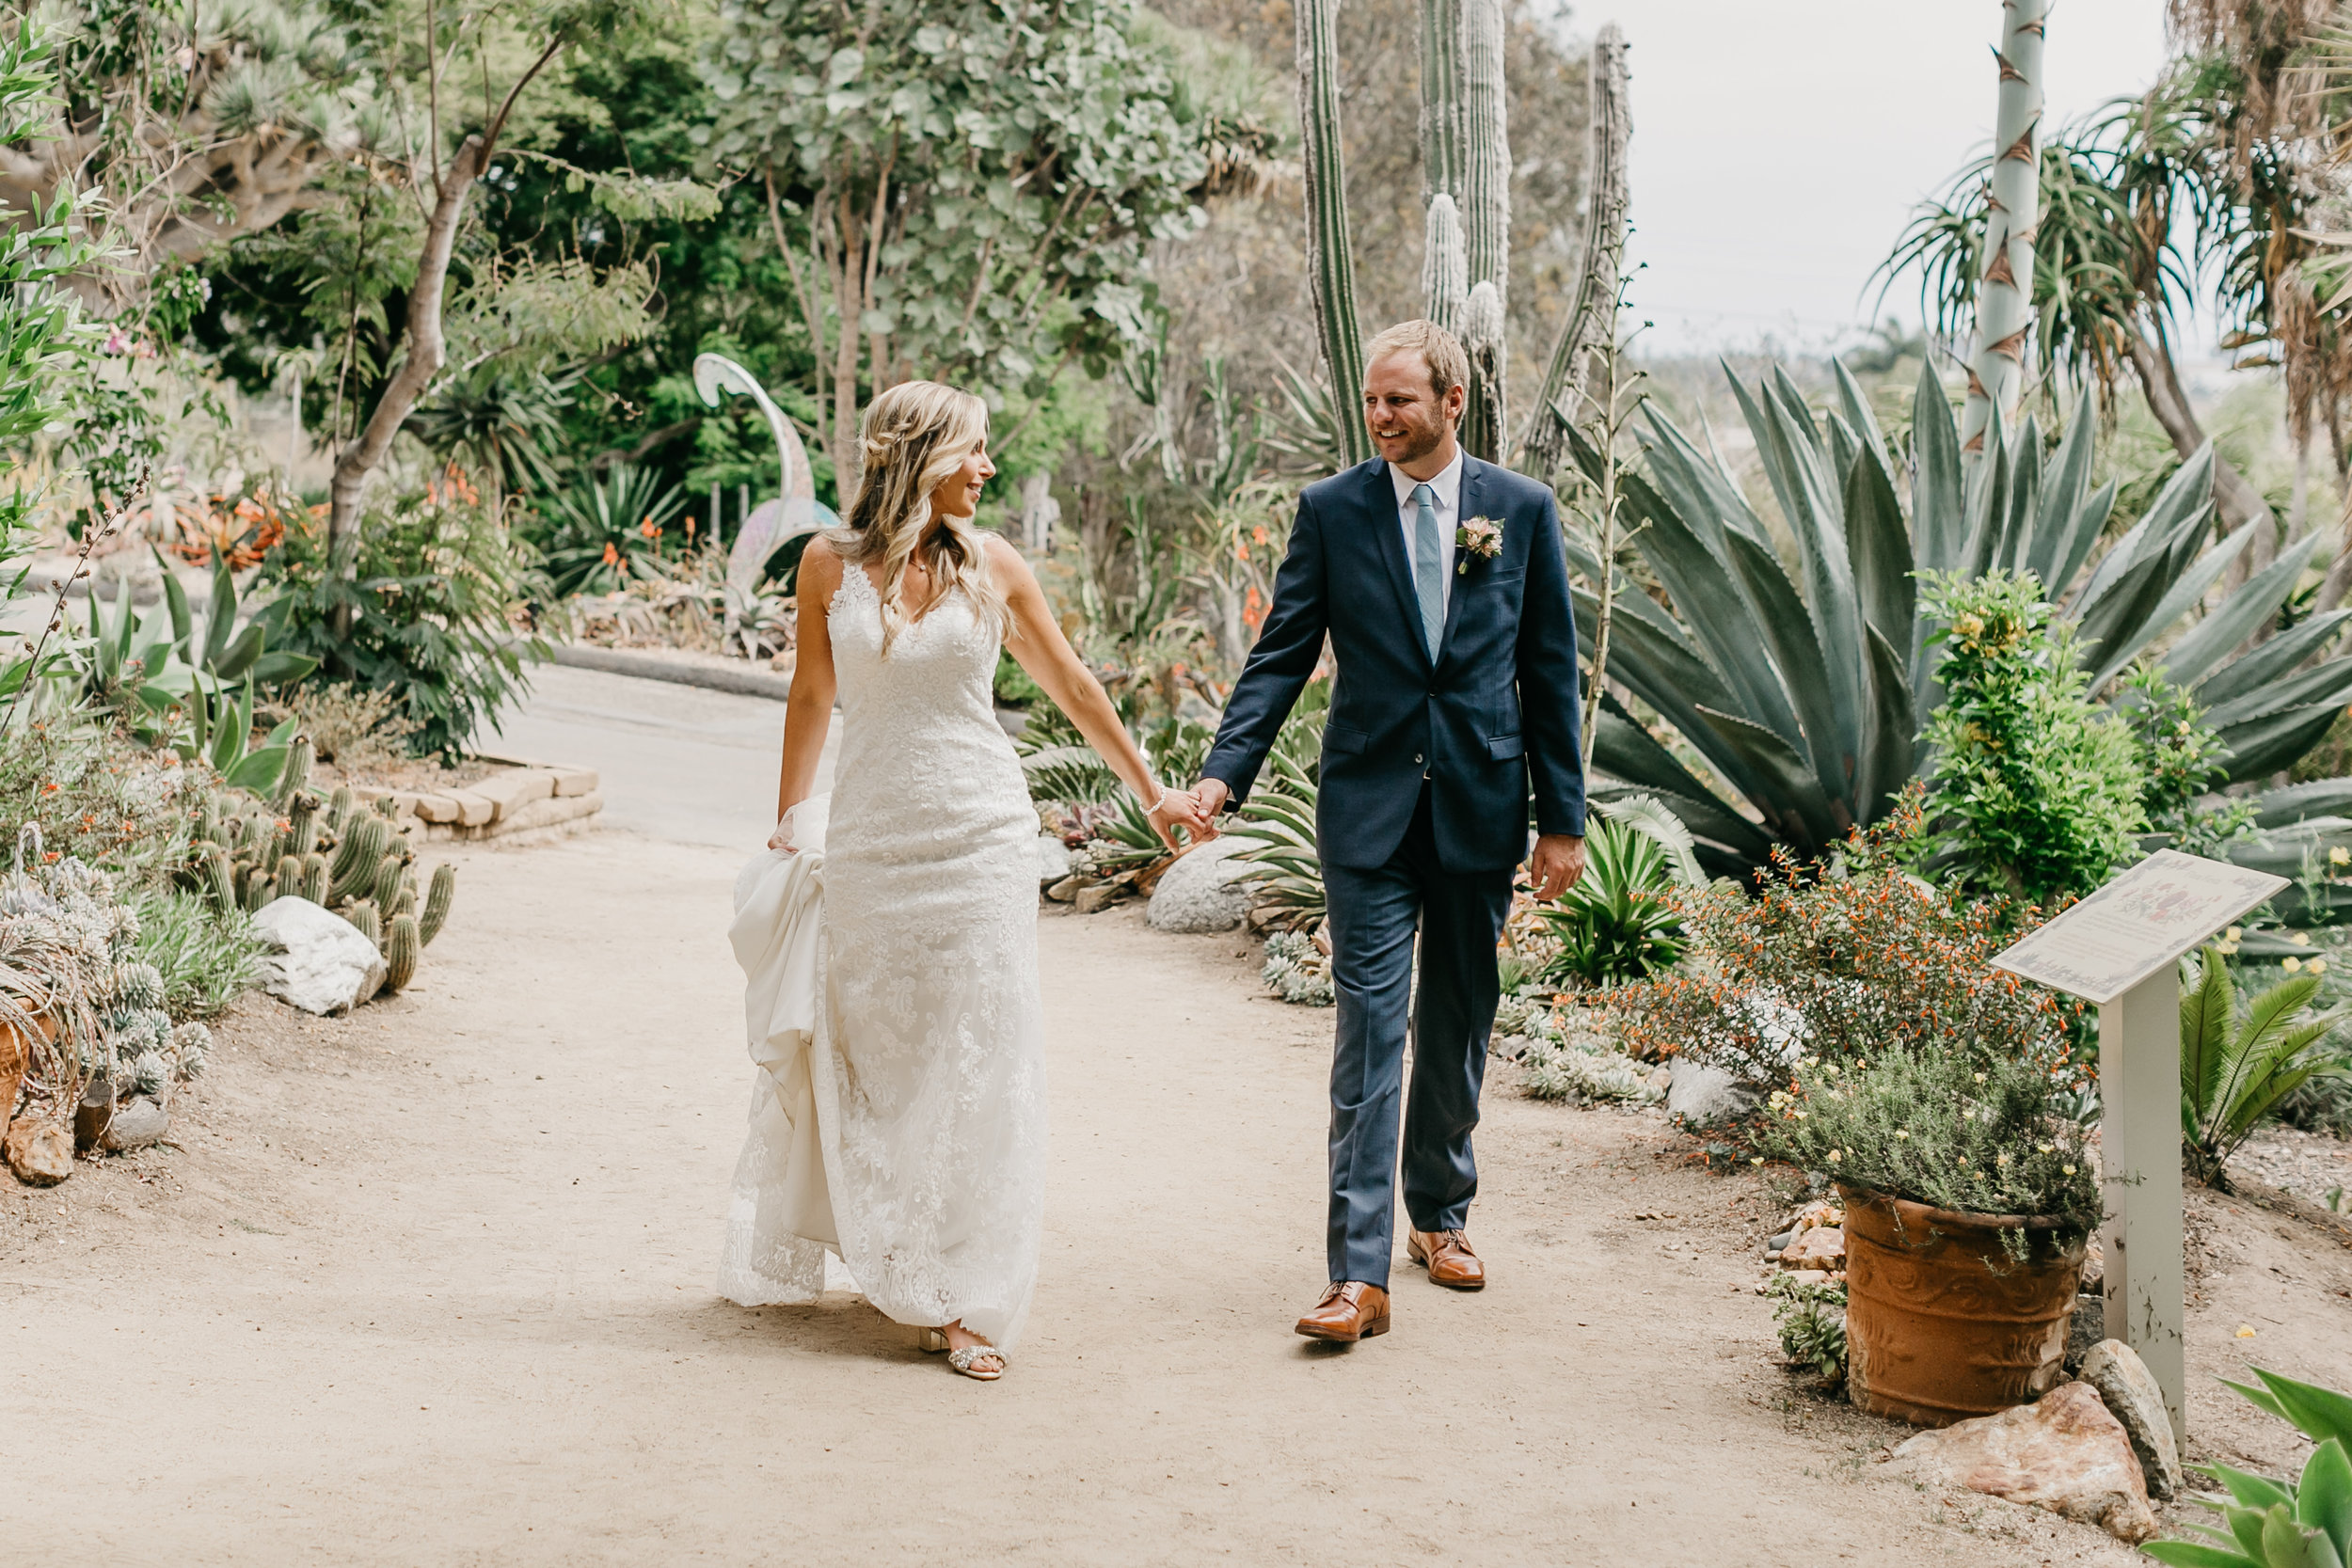 ASHLEY AND THOMAS / SAN DIEGO BOTANICAL GARDENS, SAN DIEGO CALIFORNIA WEDDING